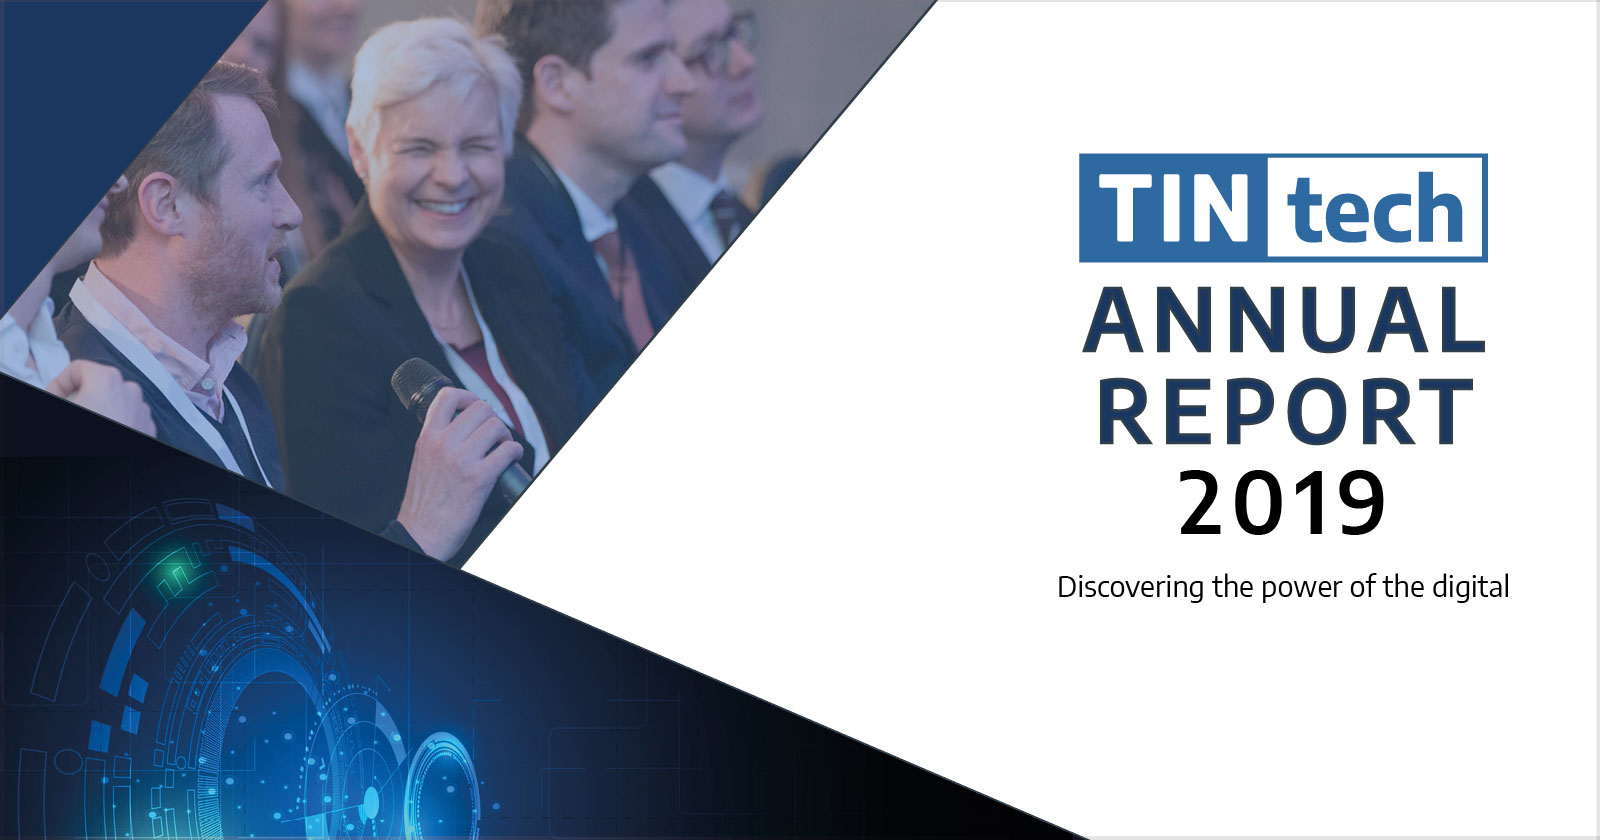 TINtech Annual Report 2019